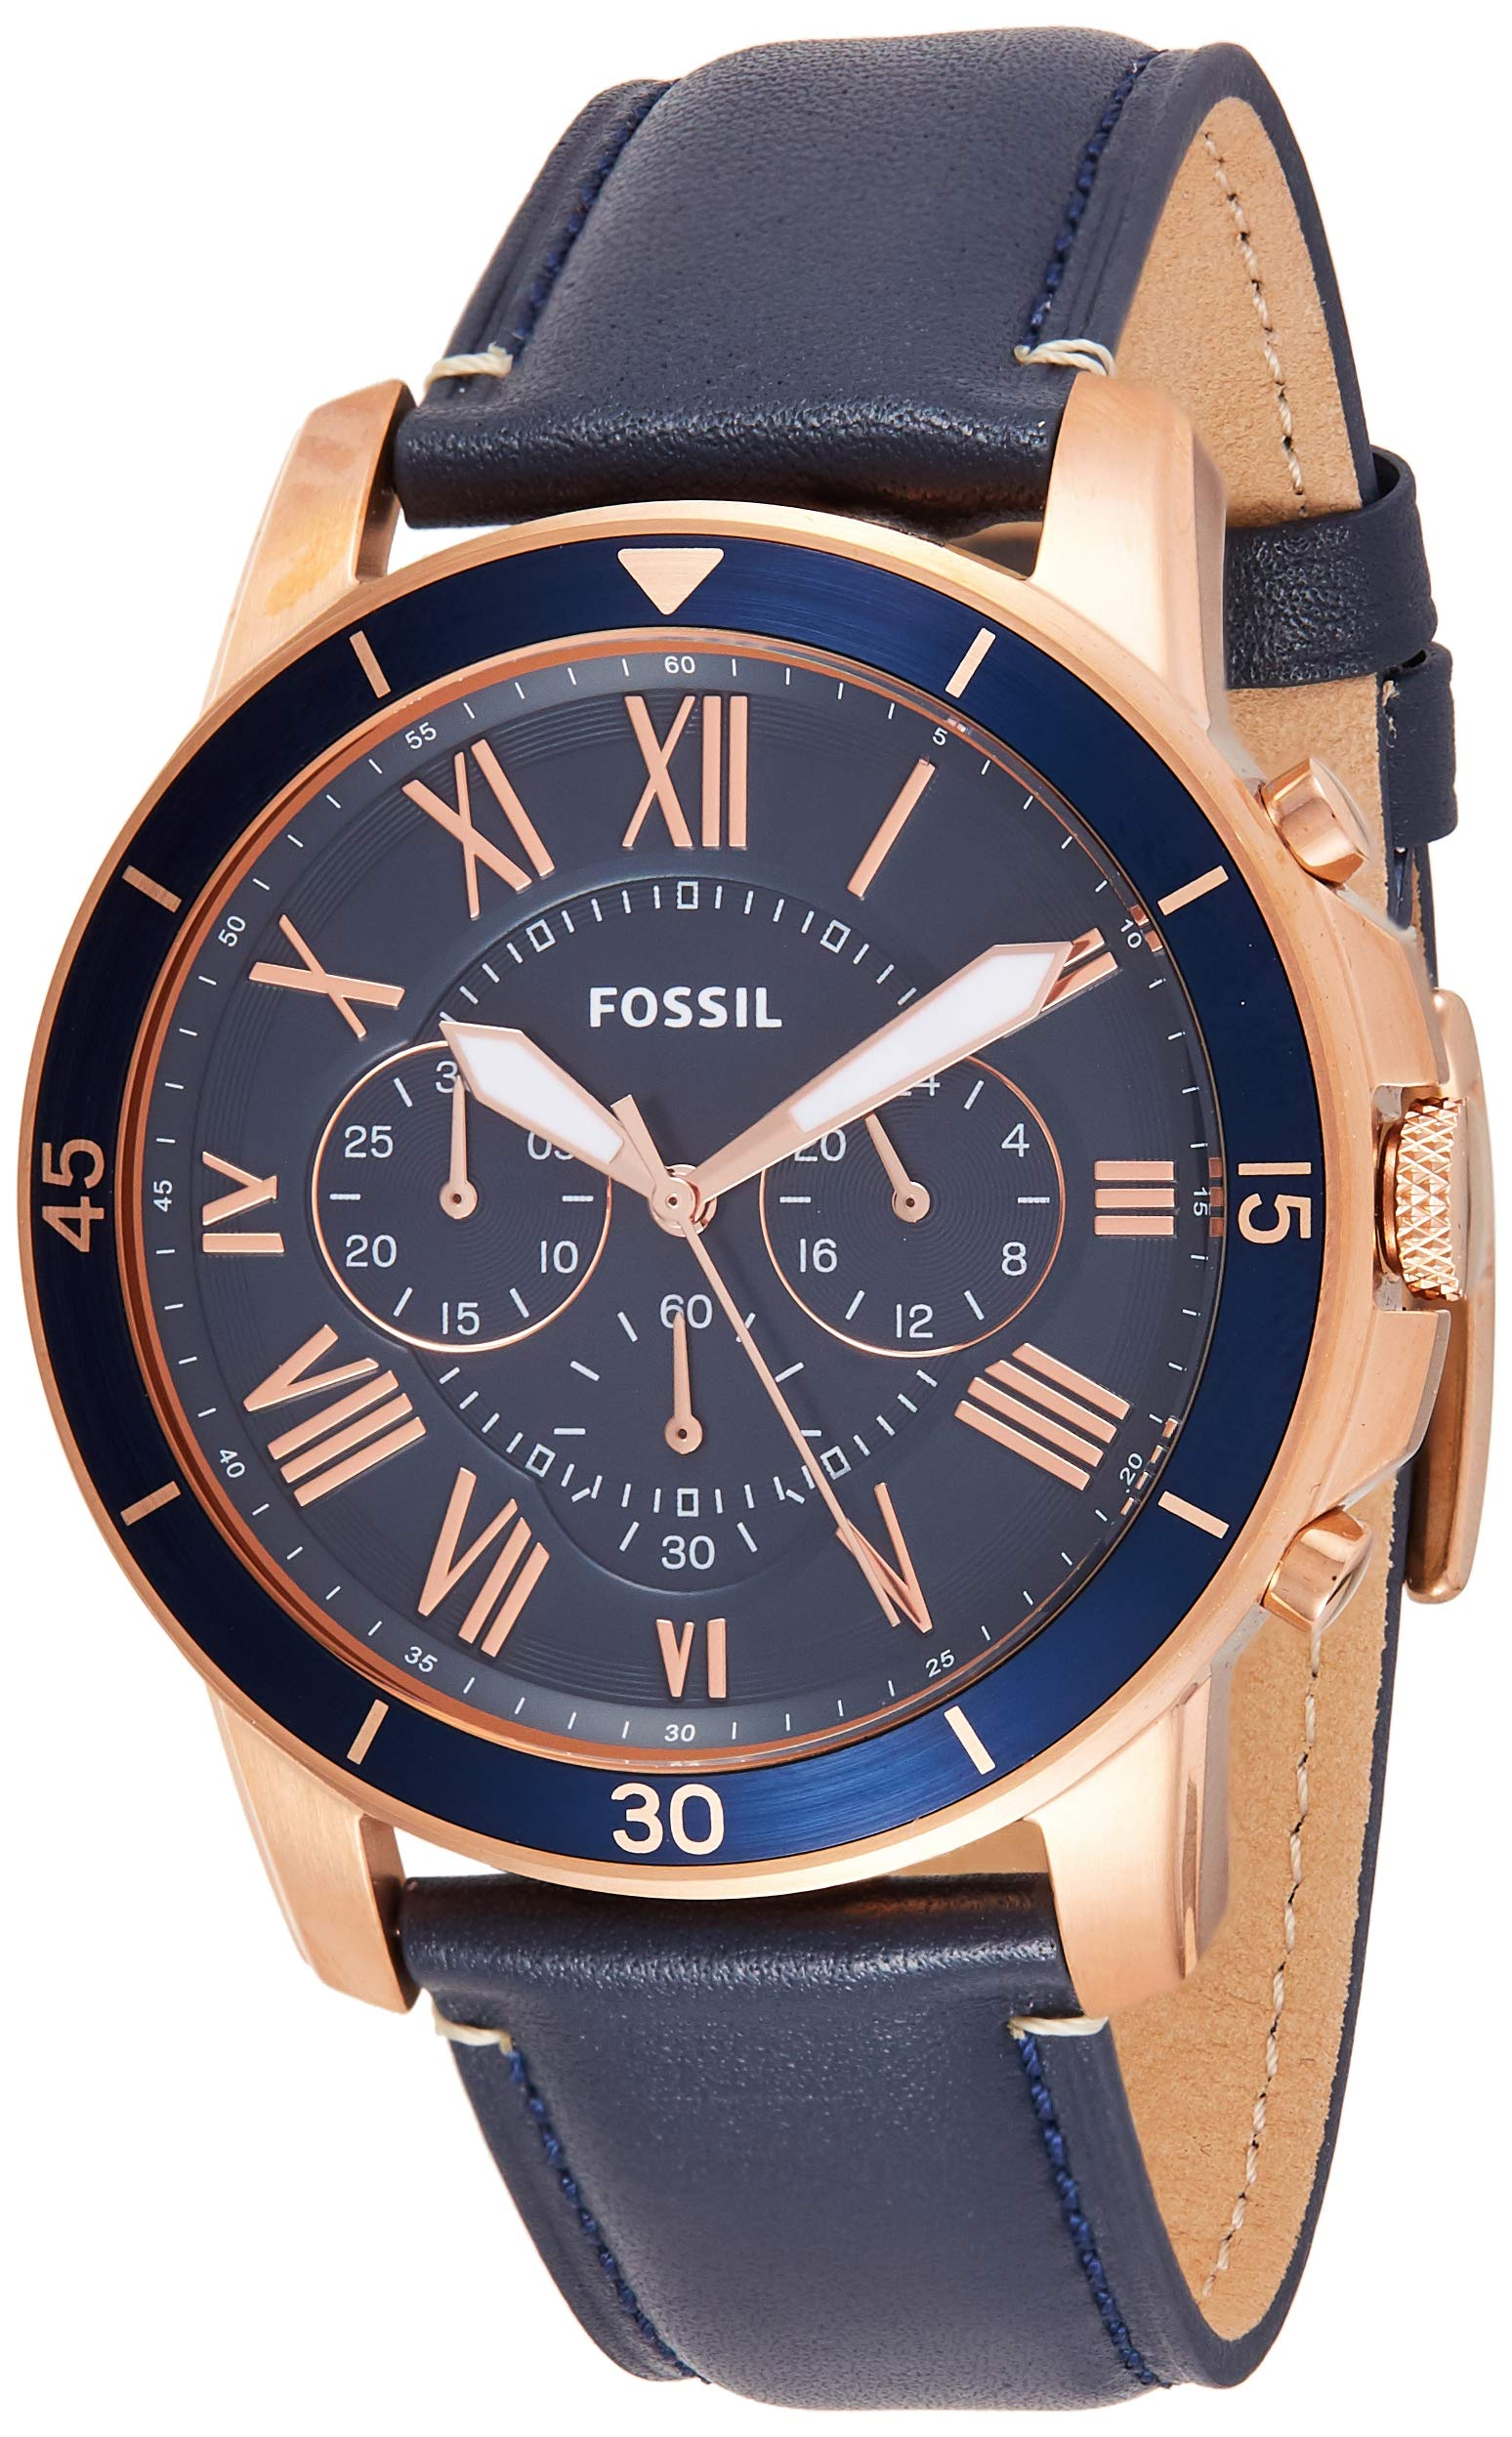 Fossil Men's Grant Sport Quartz Stainless Steel and leather Dress Watch Color: Rose gold, Navy (Model: FS5237) by Fossil